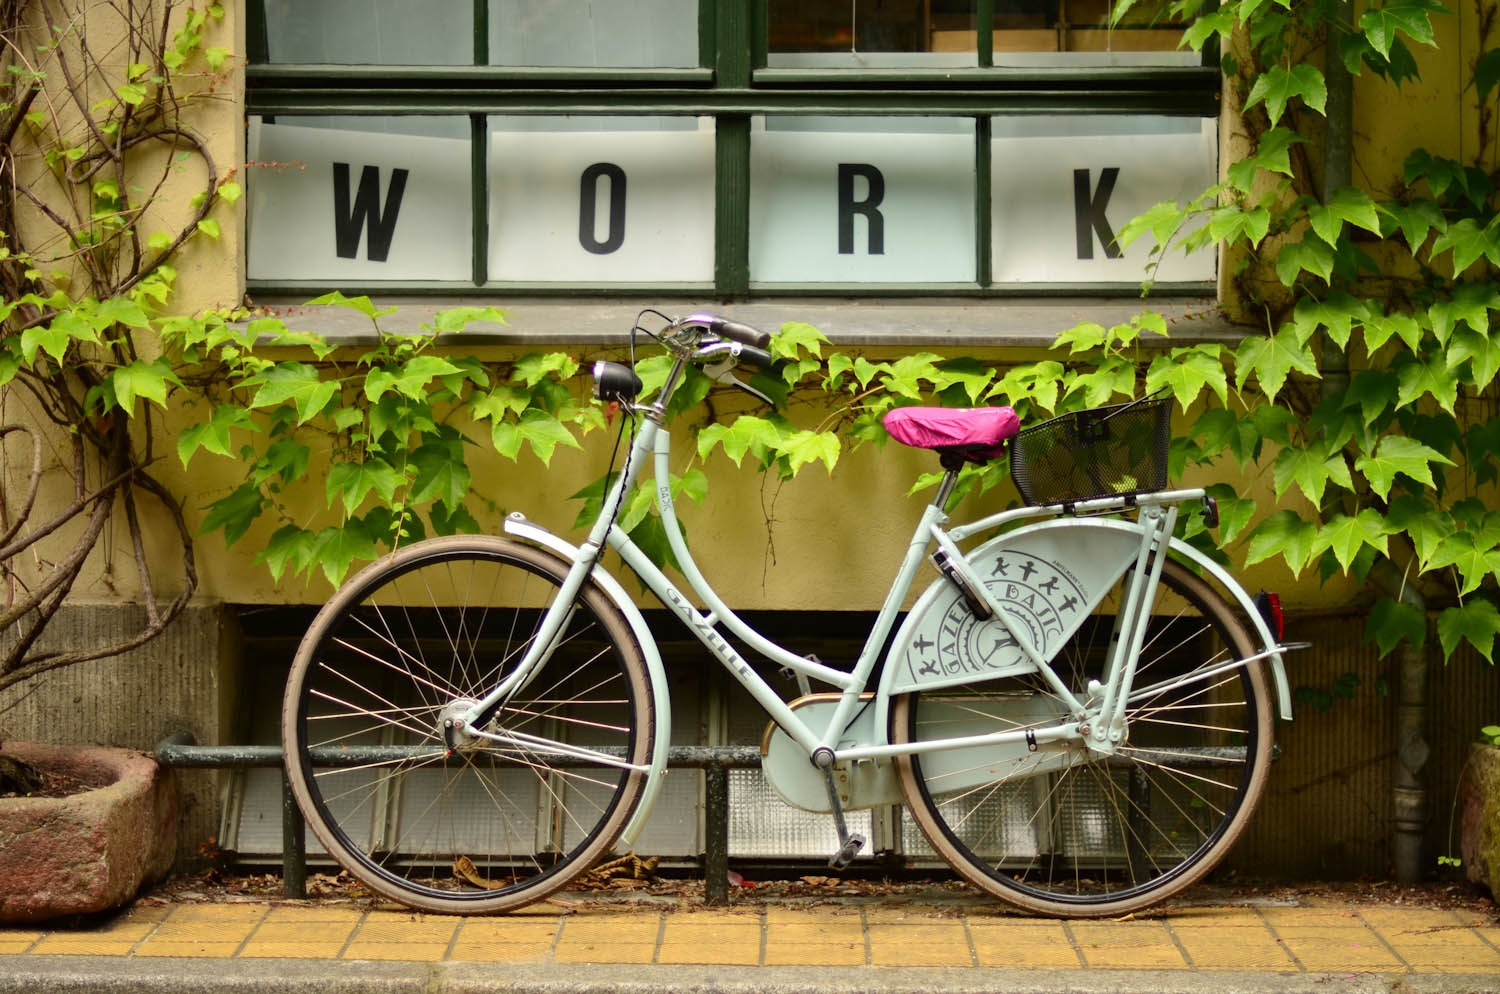 Bike to work - Up to 51% off brand new bike and safety equipmentworth up to the value of 1000 Euro